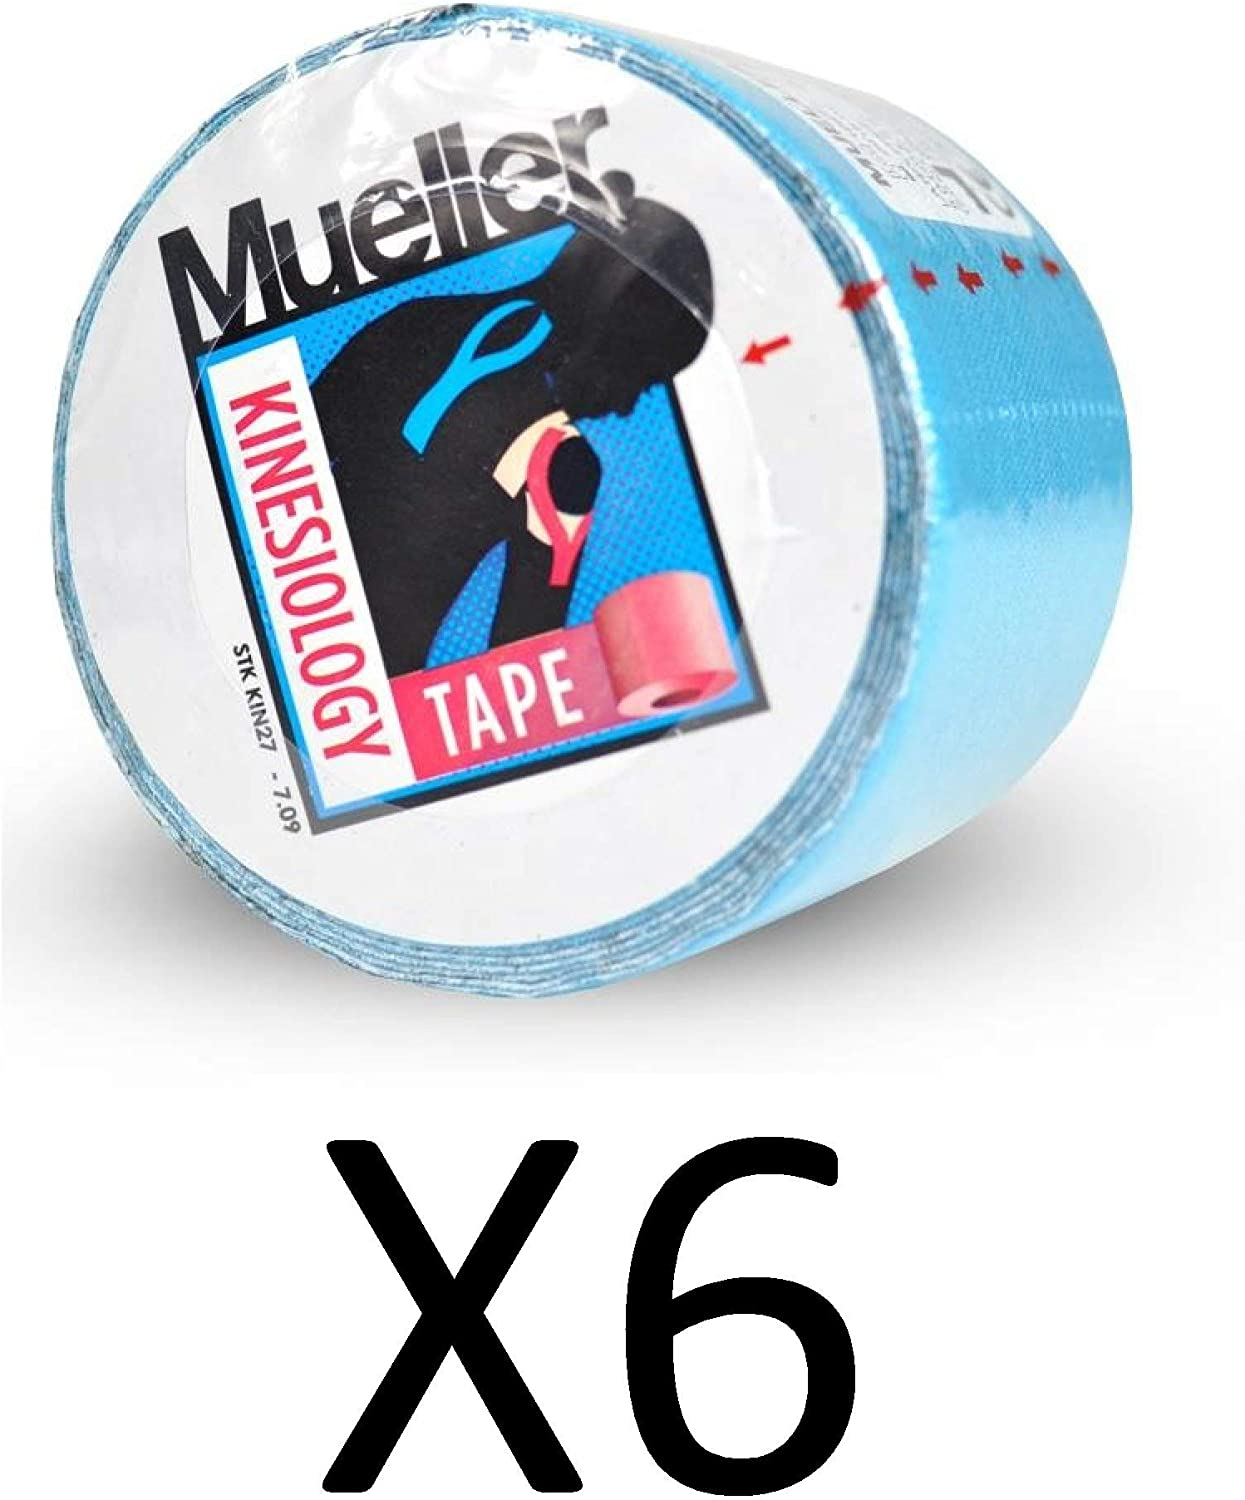 Mueller Blue Kinesiology Tape 2 inch - Box of 6 Rolls: Sports & Outdoors